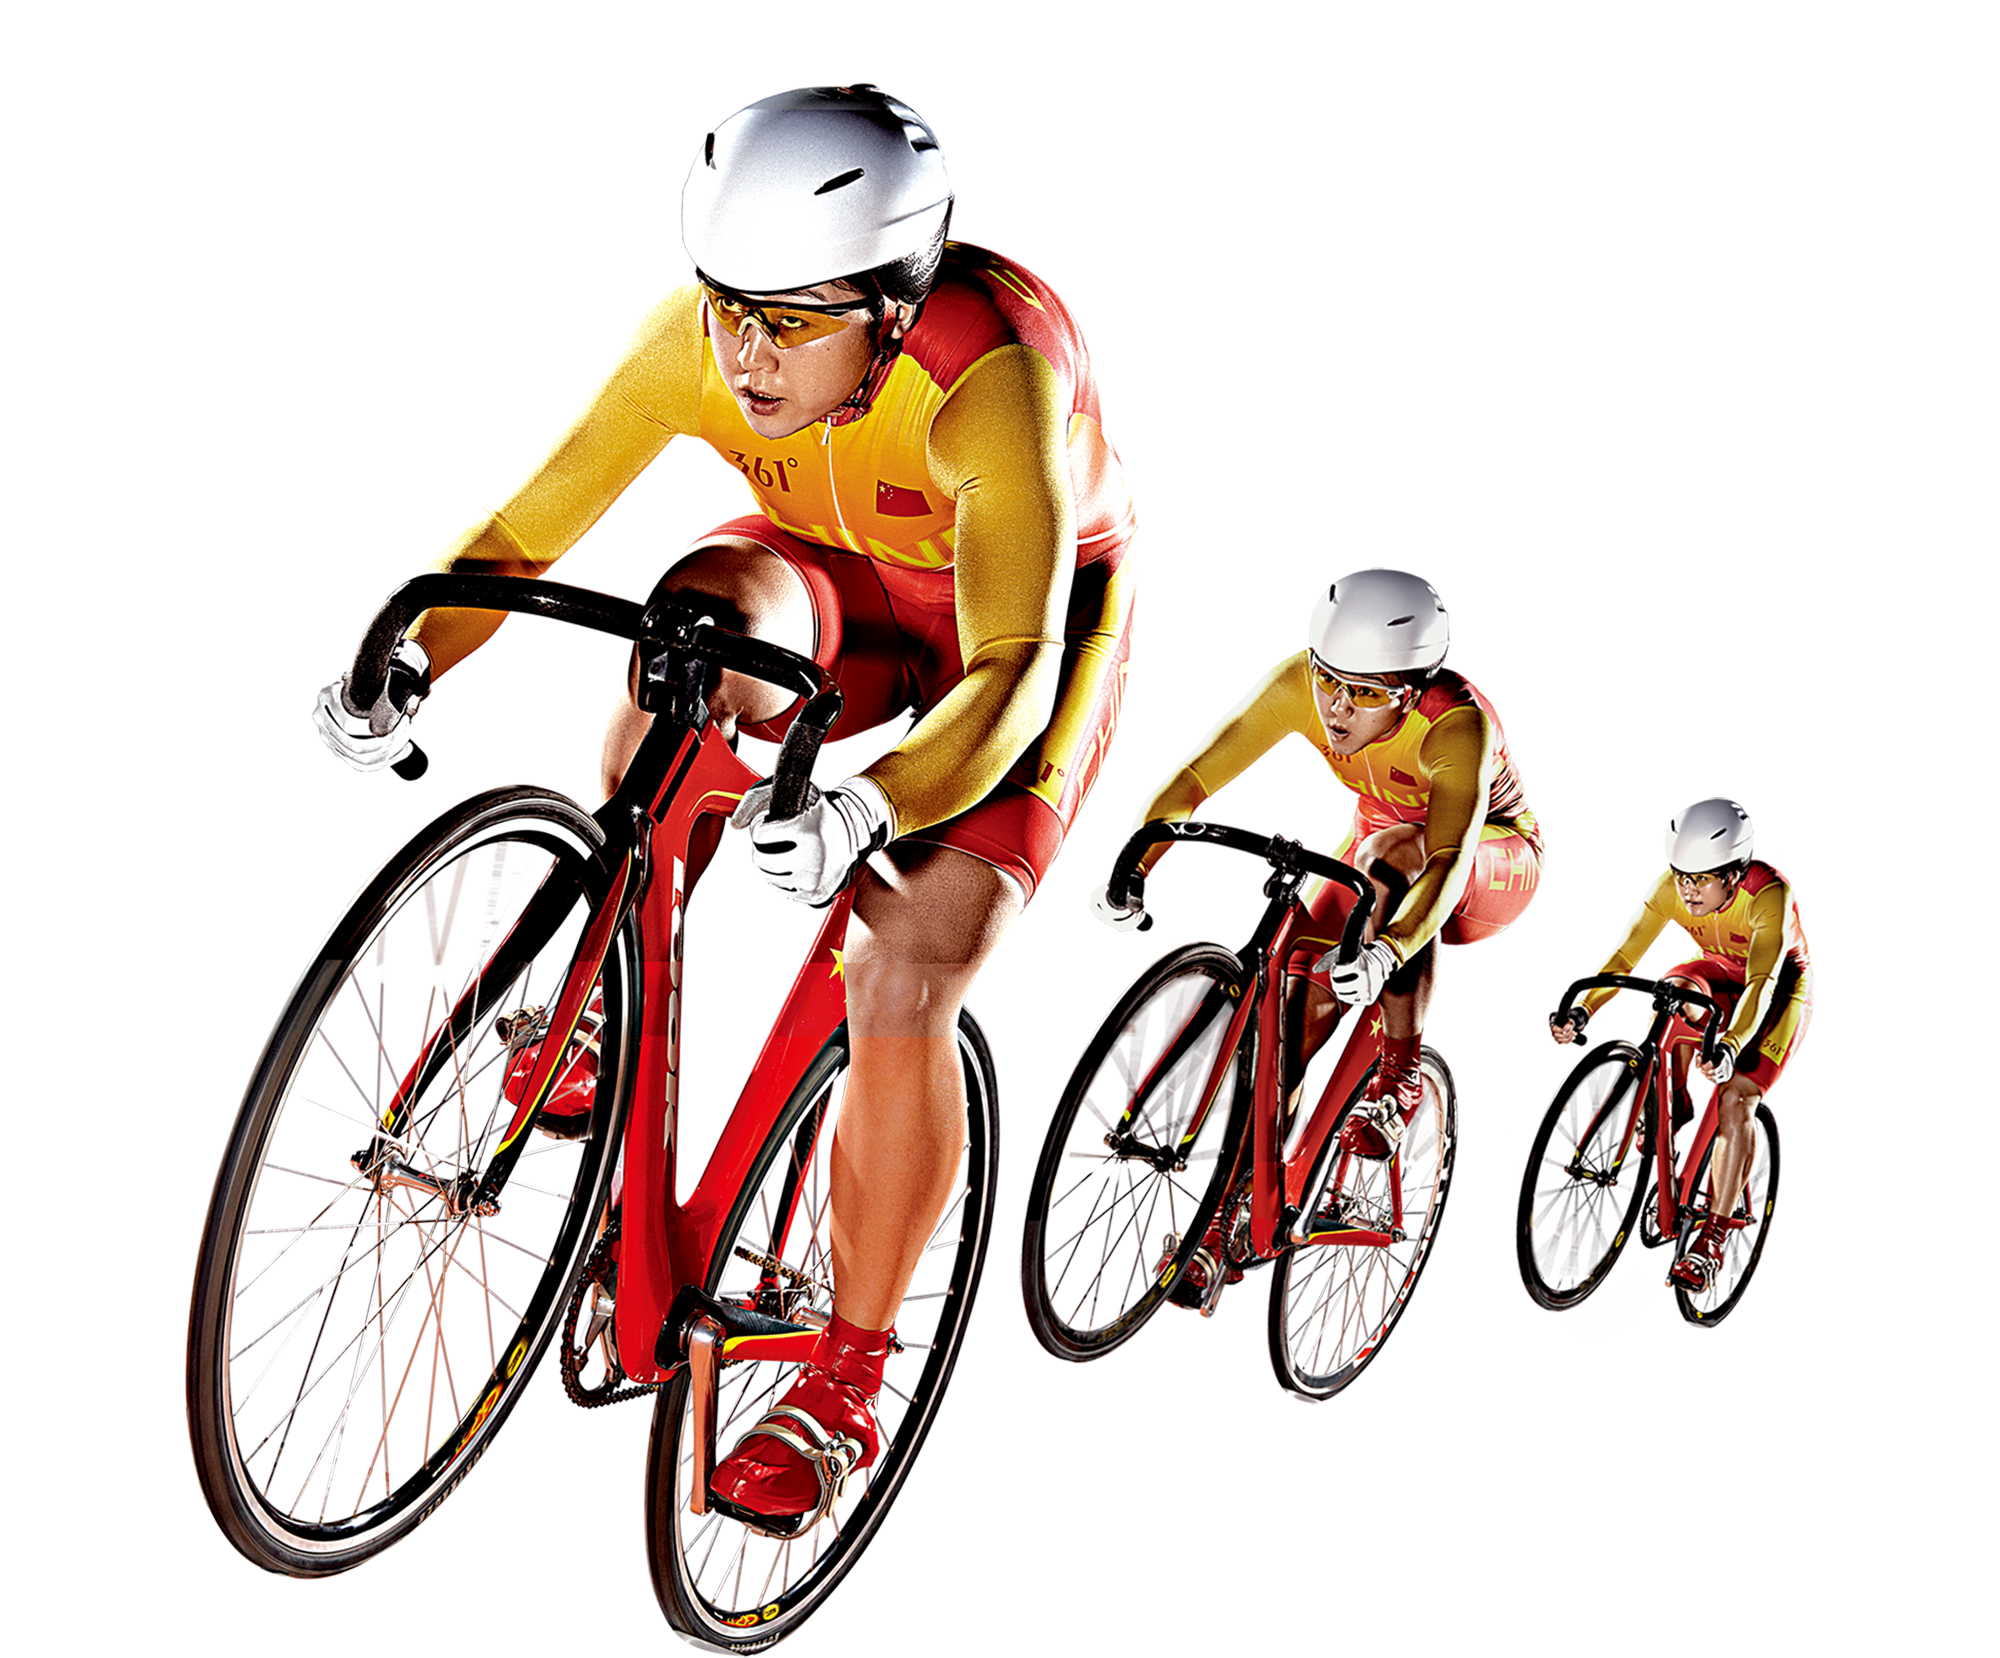 Cycle clipart cycling sport. Road bicycle racing rider